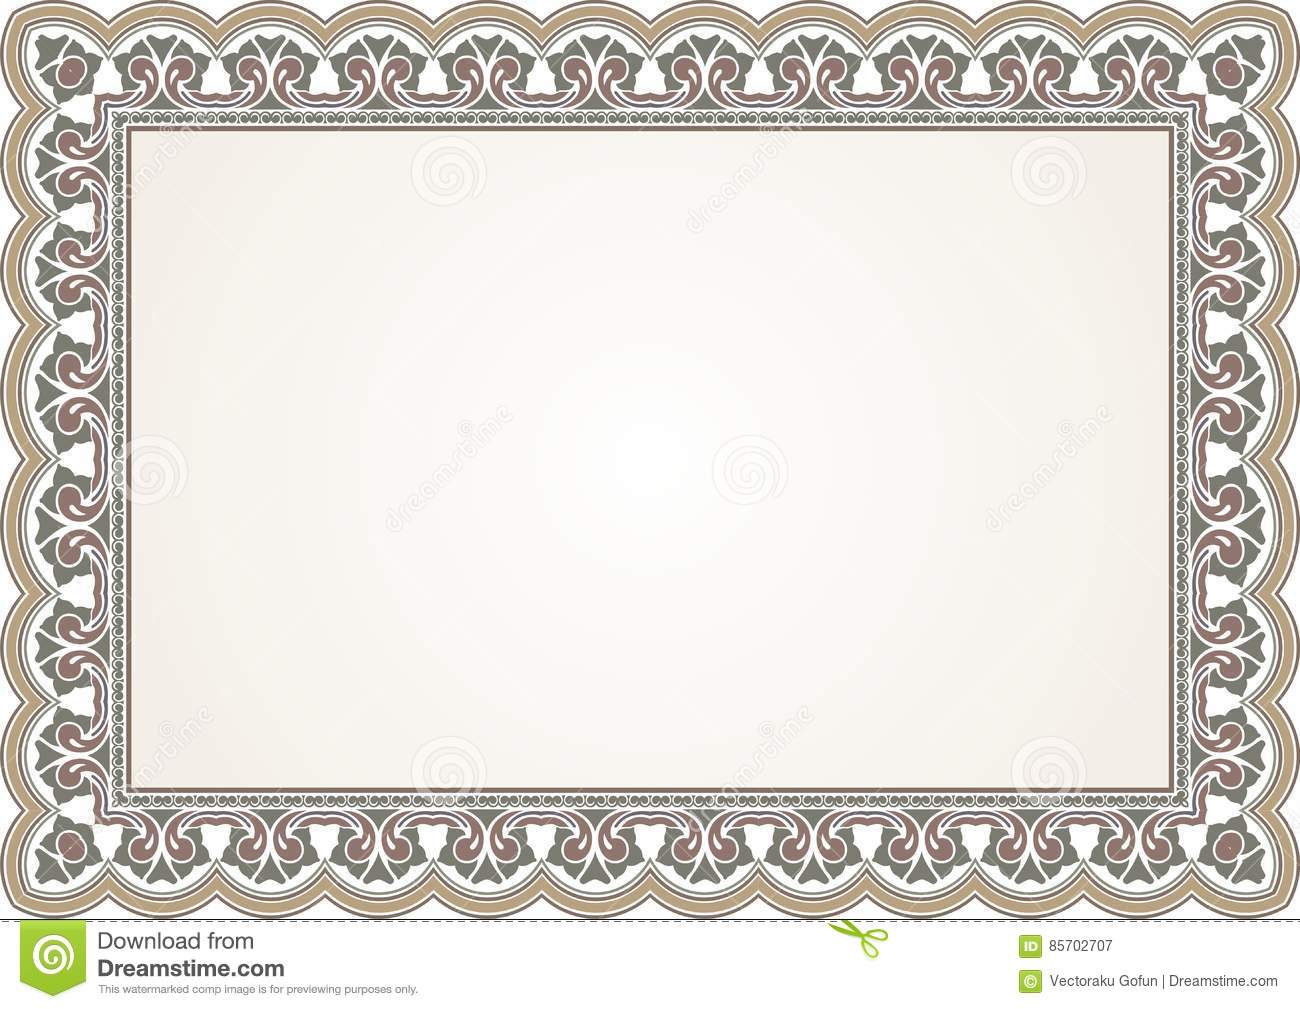 Frame - Border Certificate With Vintage Ornament Stock ...